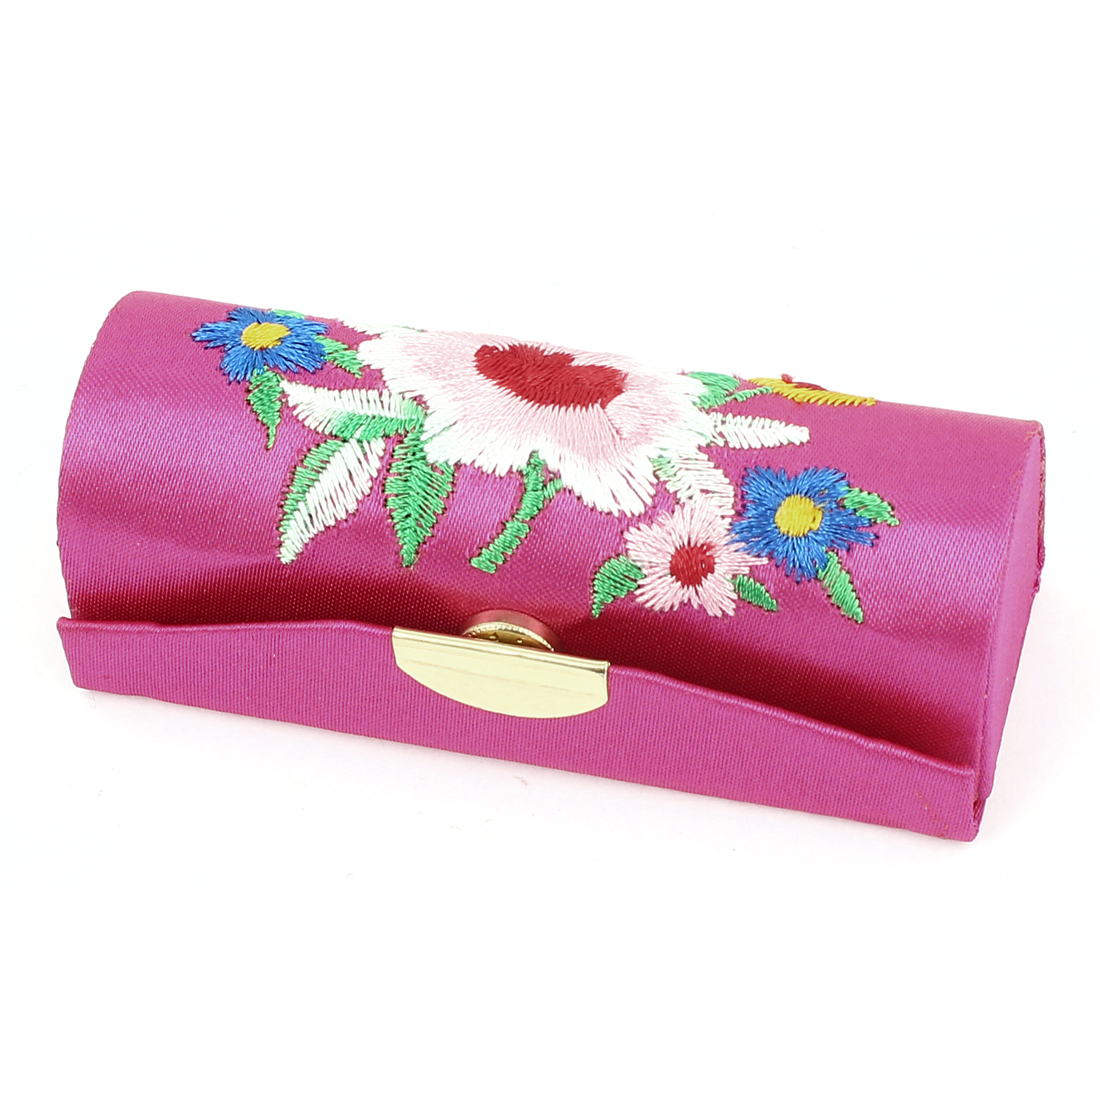 Women Floral Embroidery Mirror Lipstick Lip Balm Chap Stick Case Jewelry Box Holder Magenta